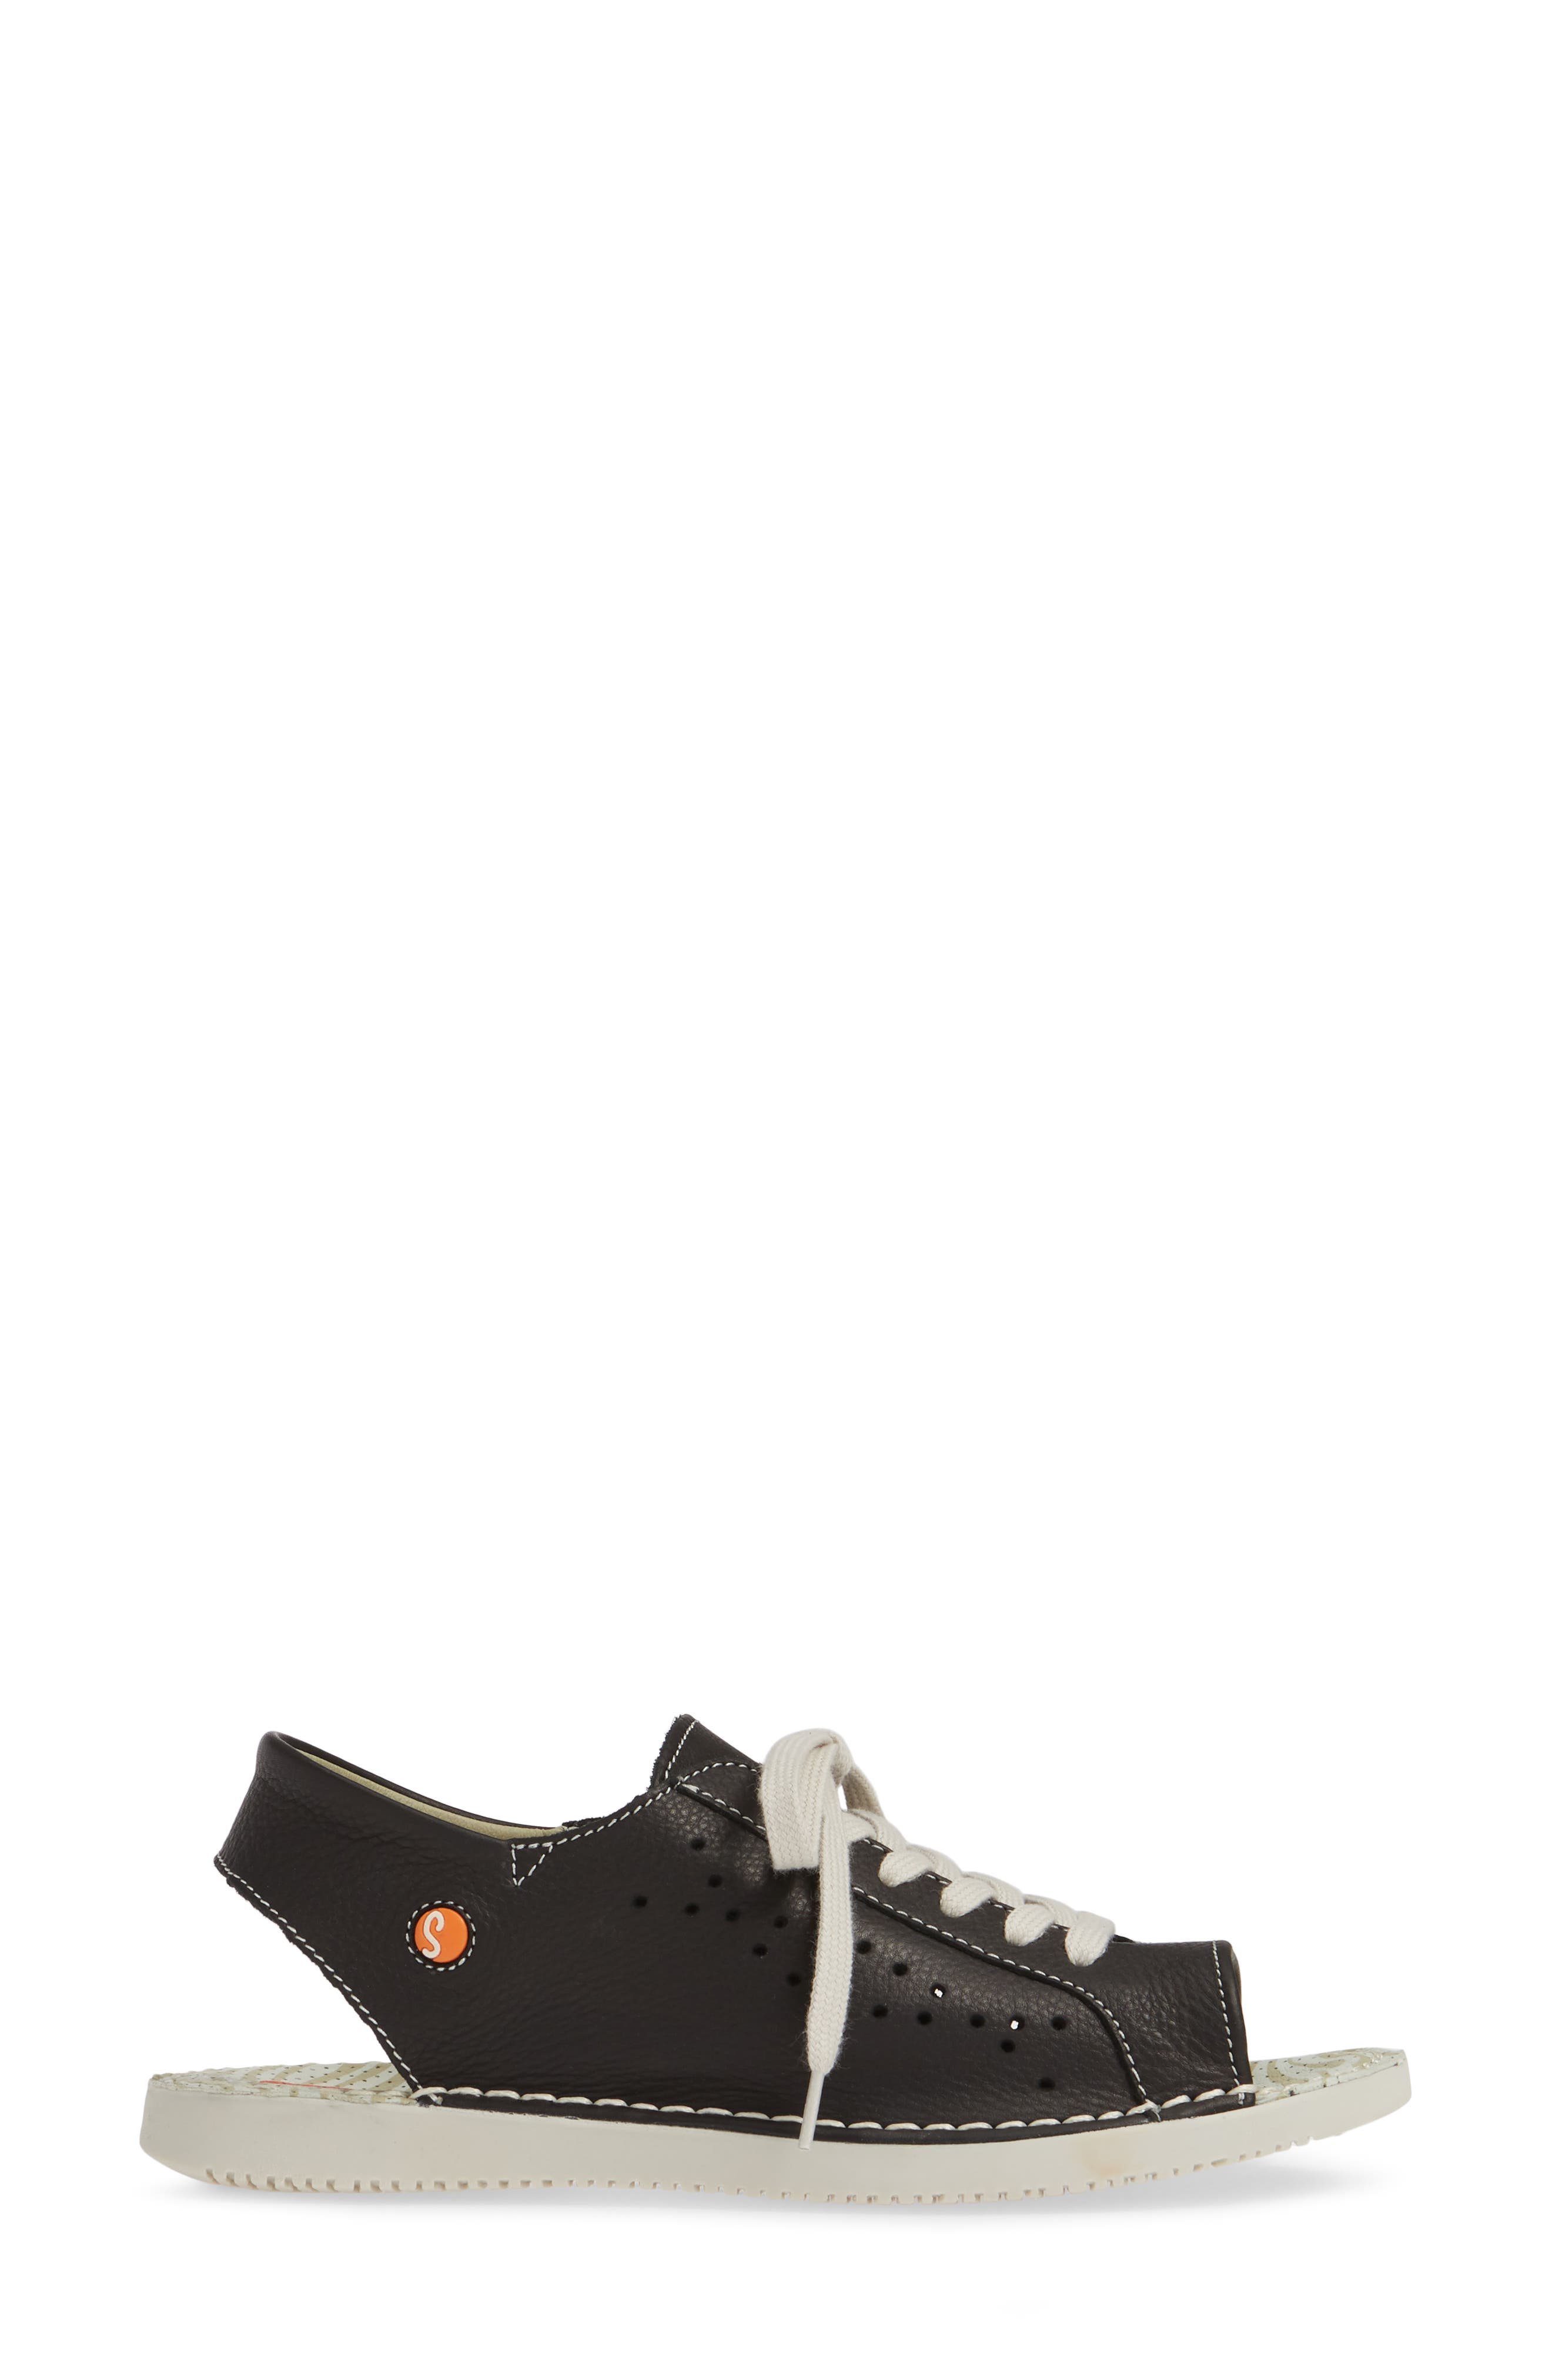 SOFTINOS BY FLY LONDON, Thi Slingback Sneaker Sandal, Alternate thumbnail 3, color, BLACK LEATHER